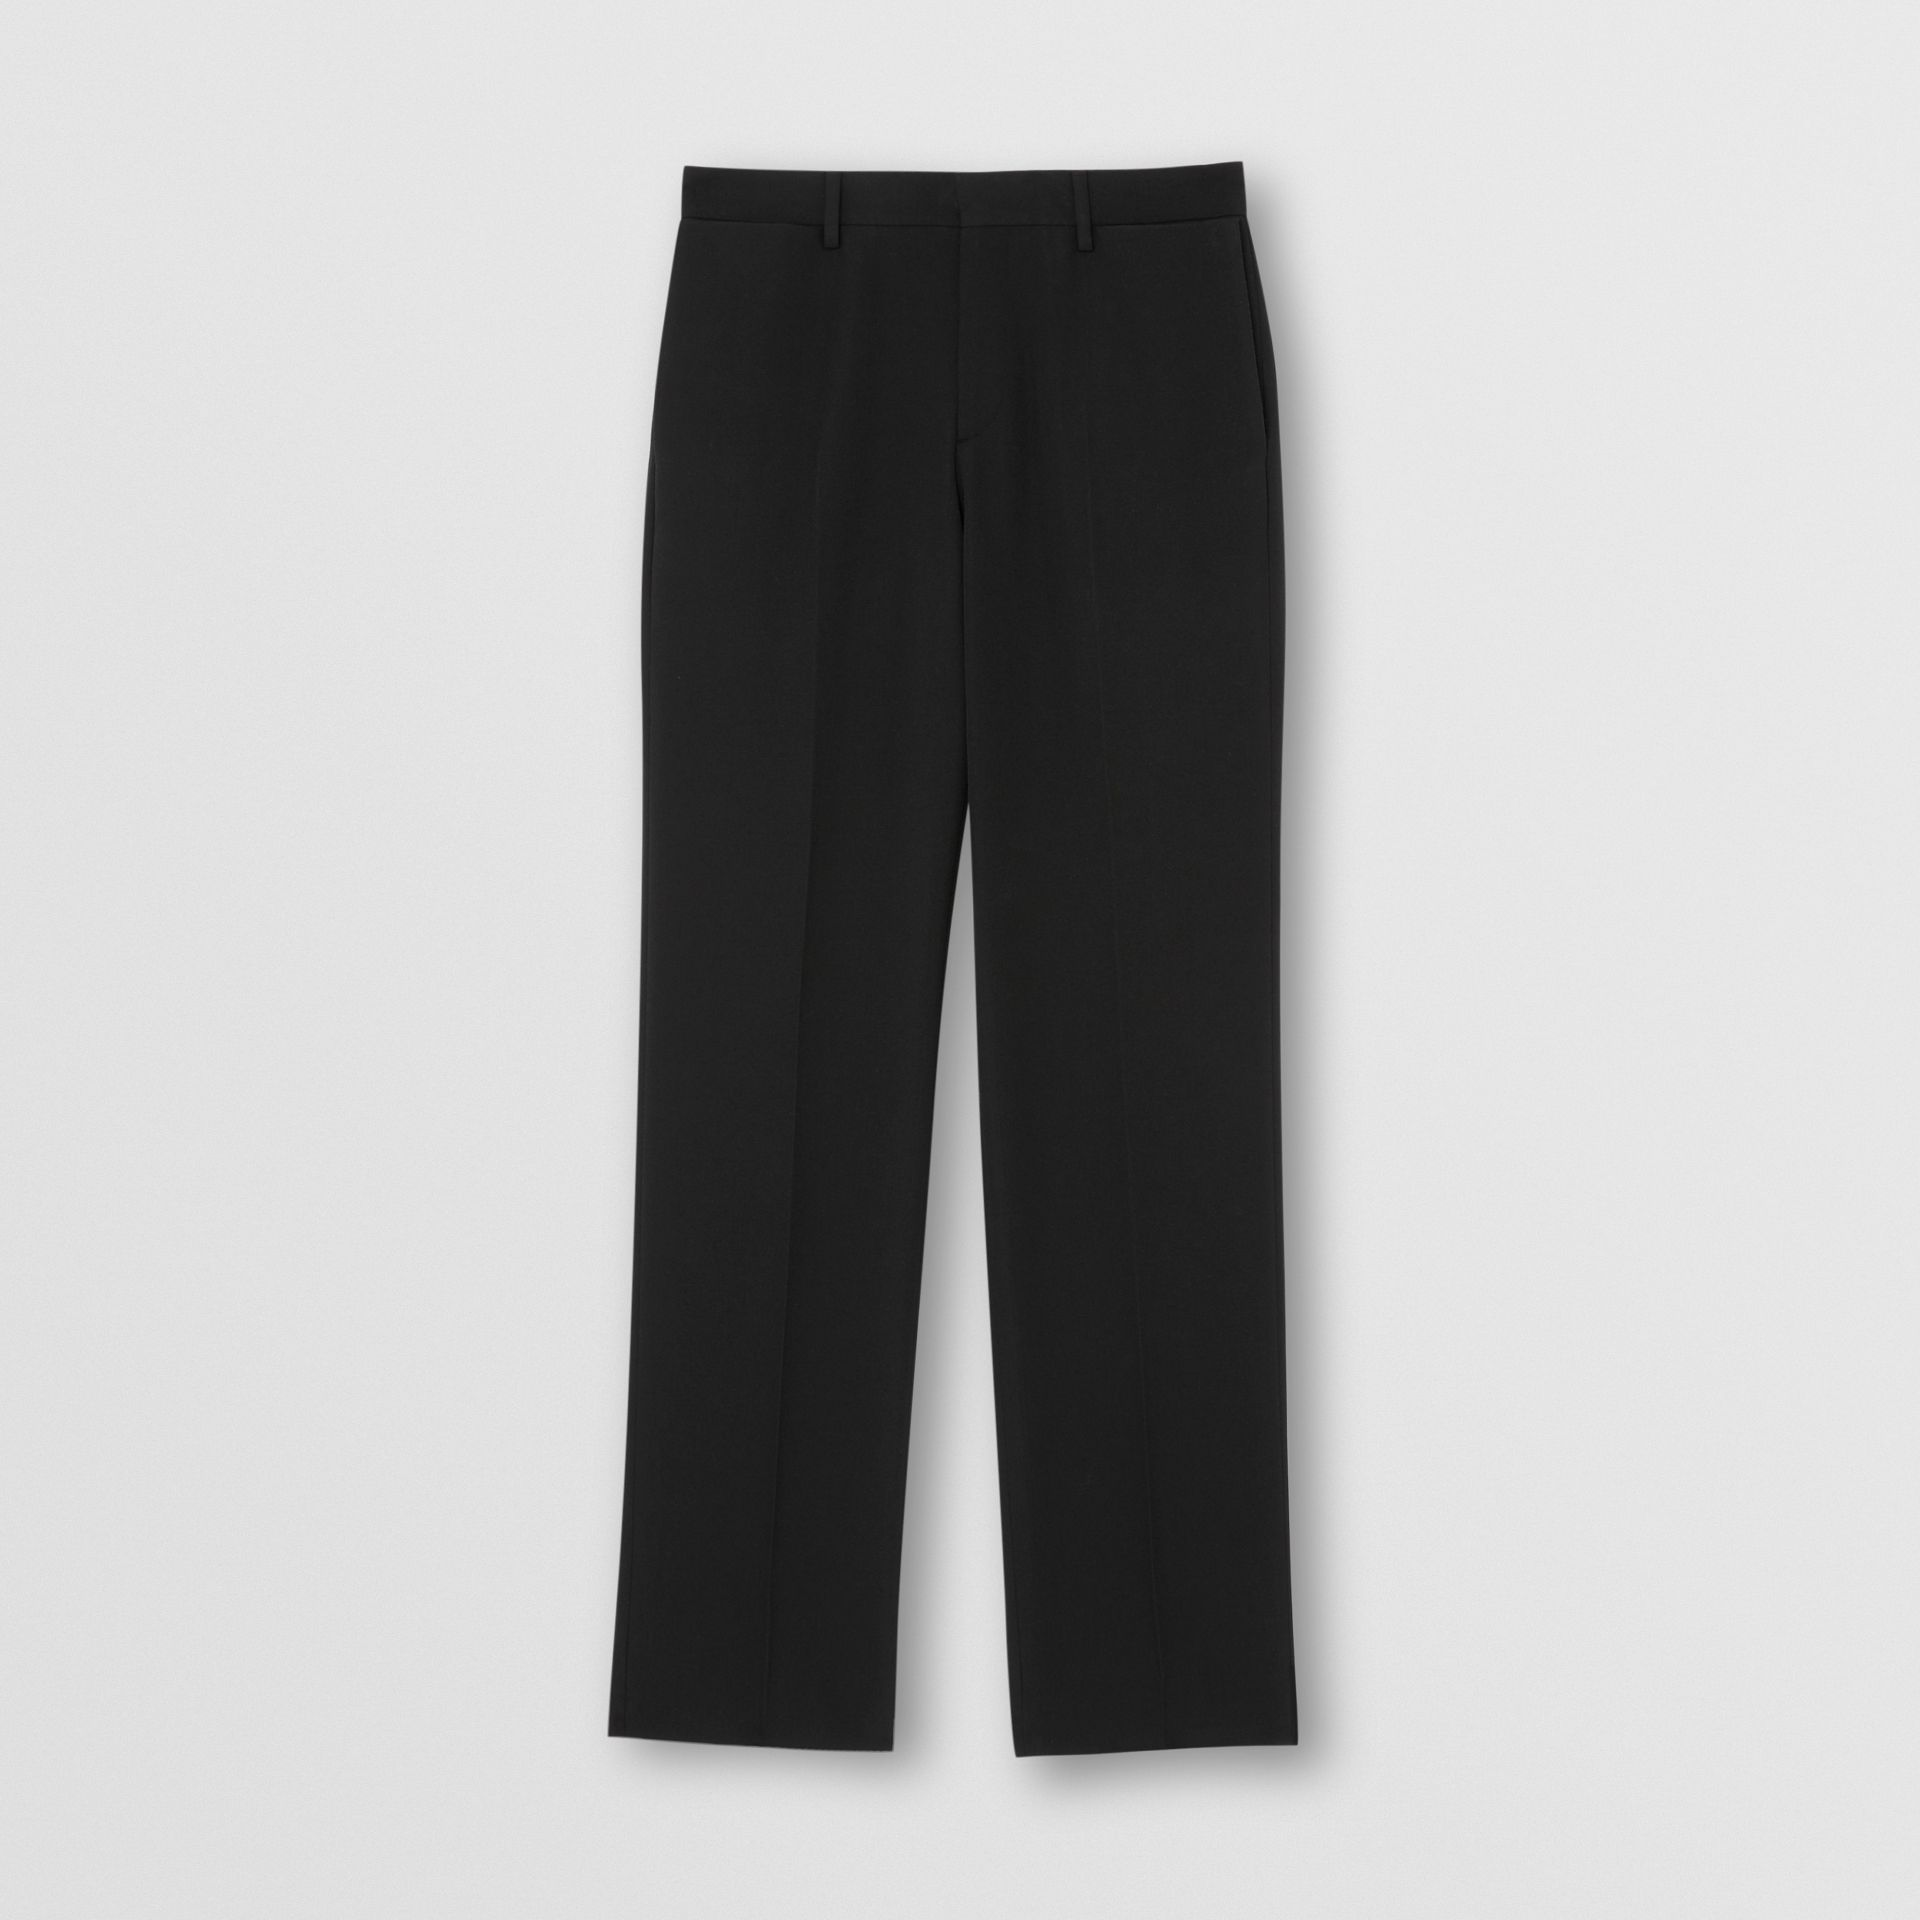 English Fit Pocket Detail Wool Tailored Trousers in Black | Burberry United Kingdom - gallery image 3